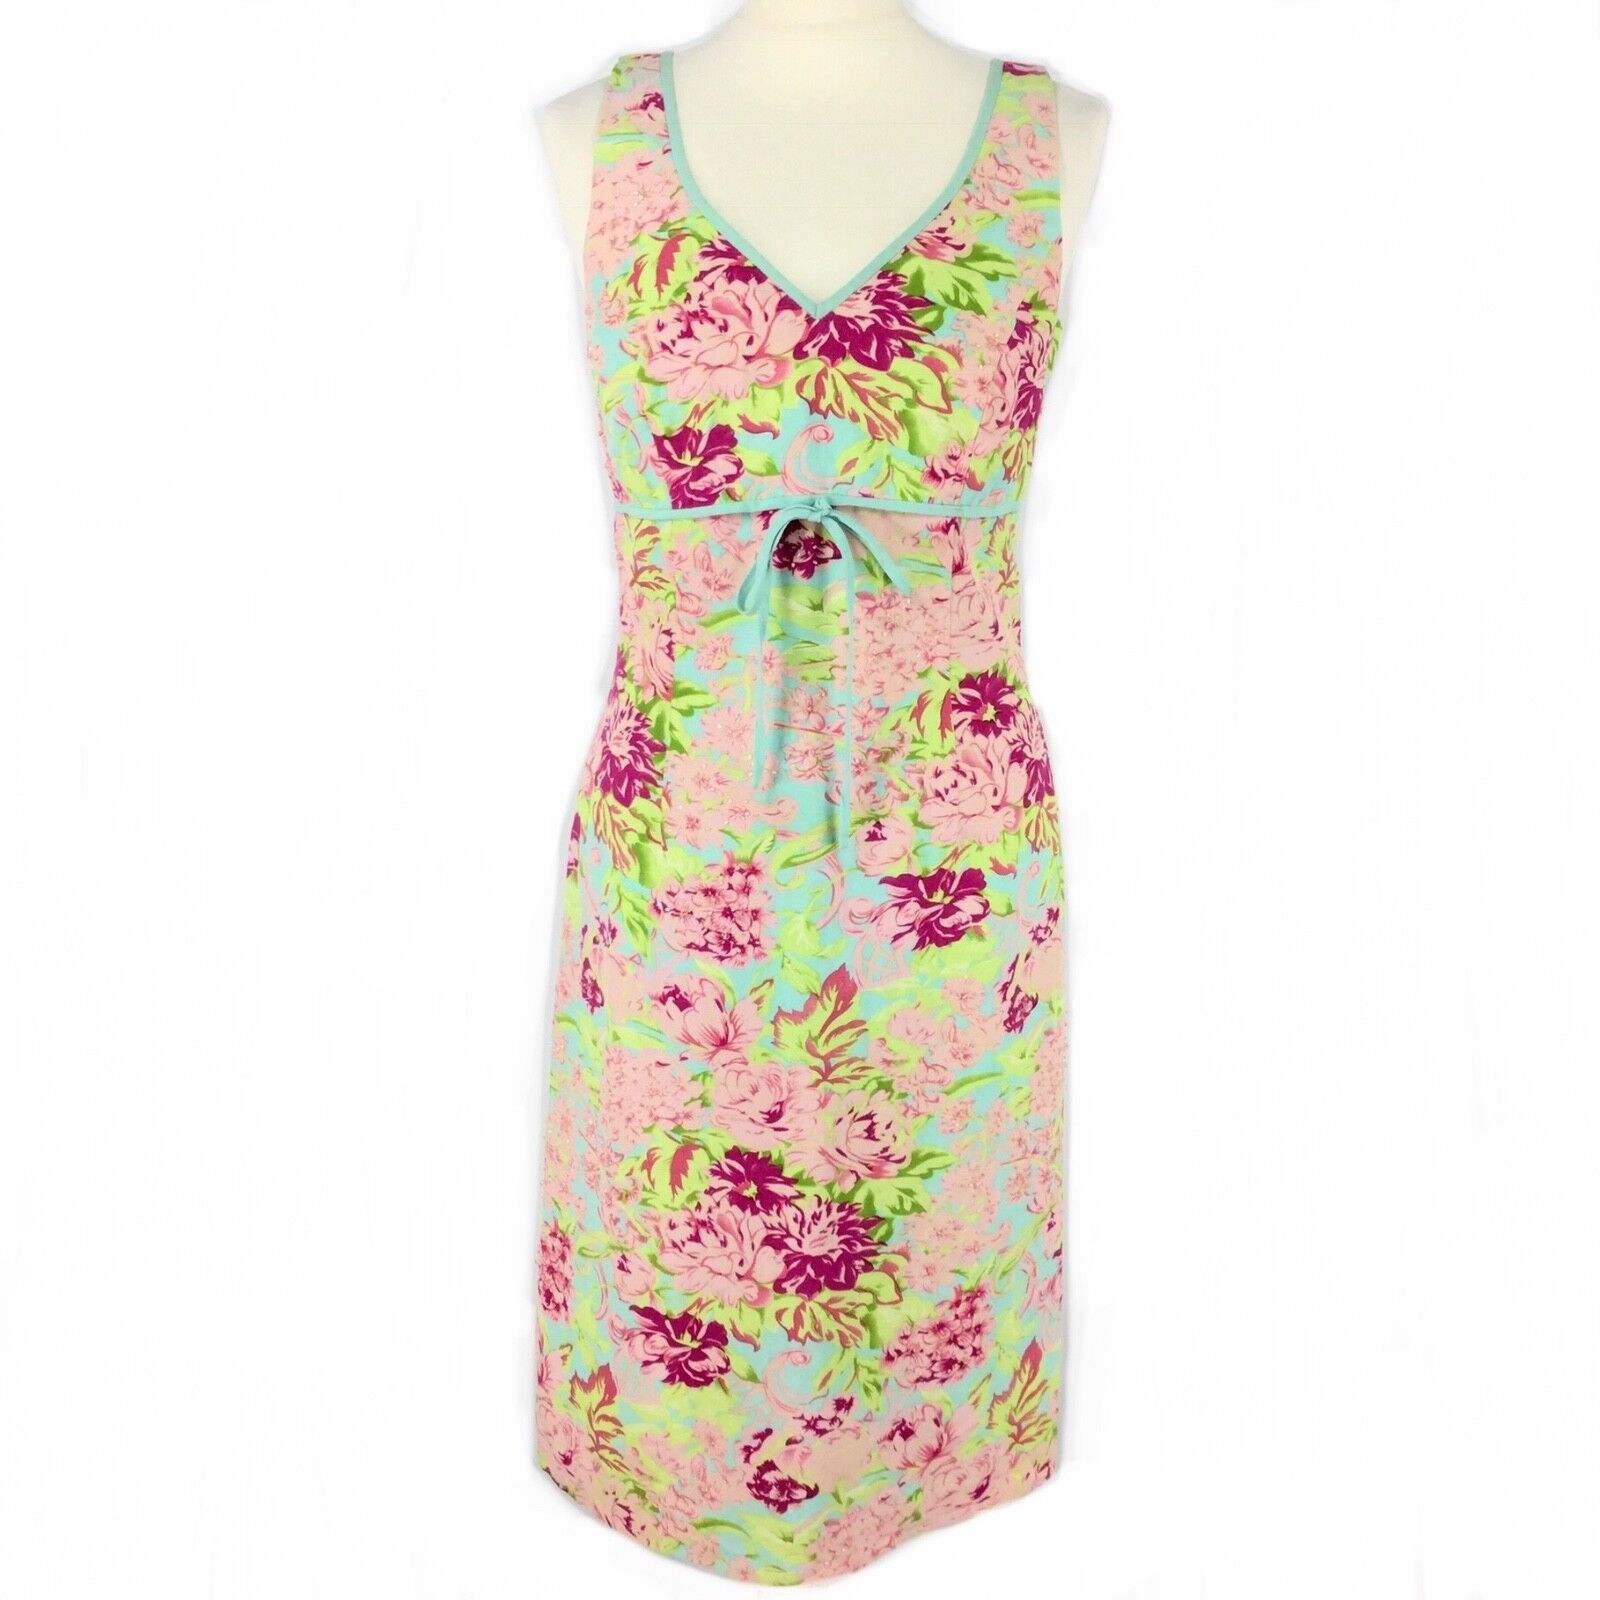 TINA TAYLOR Pink bluee Green Botanical Floral Beaded Silk Linen Shift Dress 12